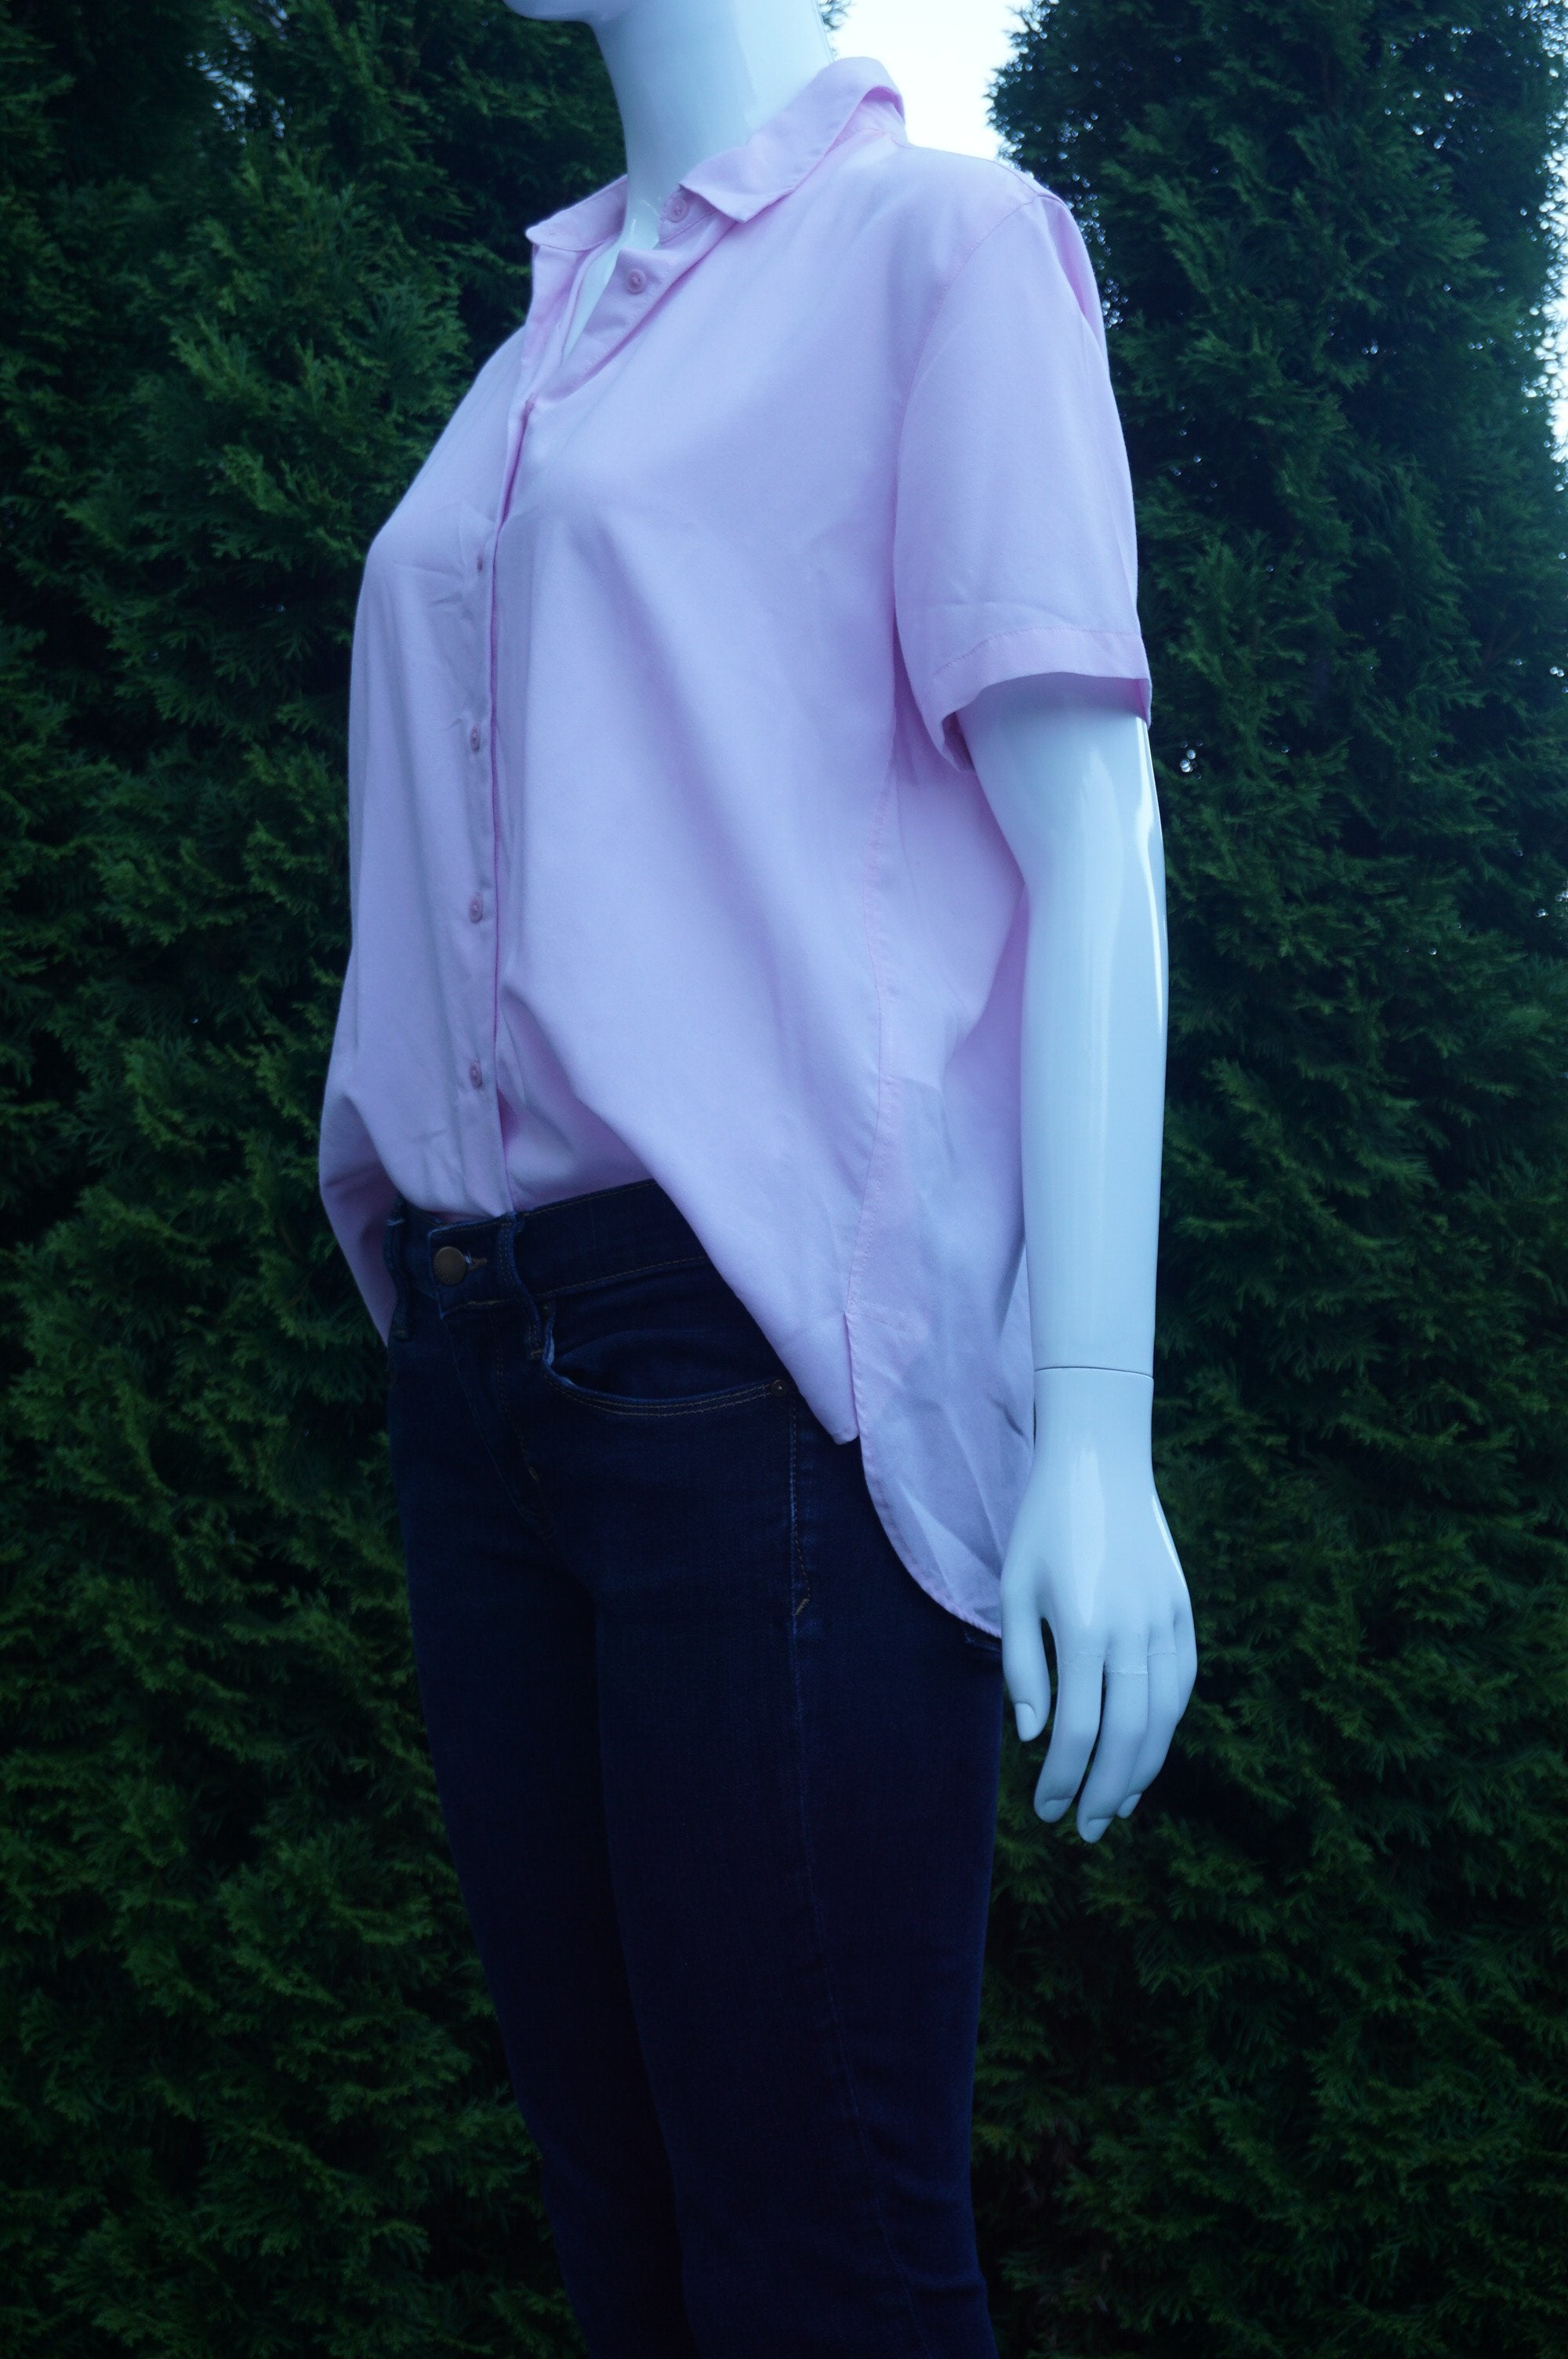 Uniqlo Light Pink Short Sleeve Shirt, Rayon and polyester material makes a very comfy and minimalistic shirt, Pink, women's Tops, women's Pink Tops, Uniqlo women's Tops, dress shirt, simple pink work shirt, office shirt, professional shirt